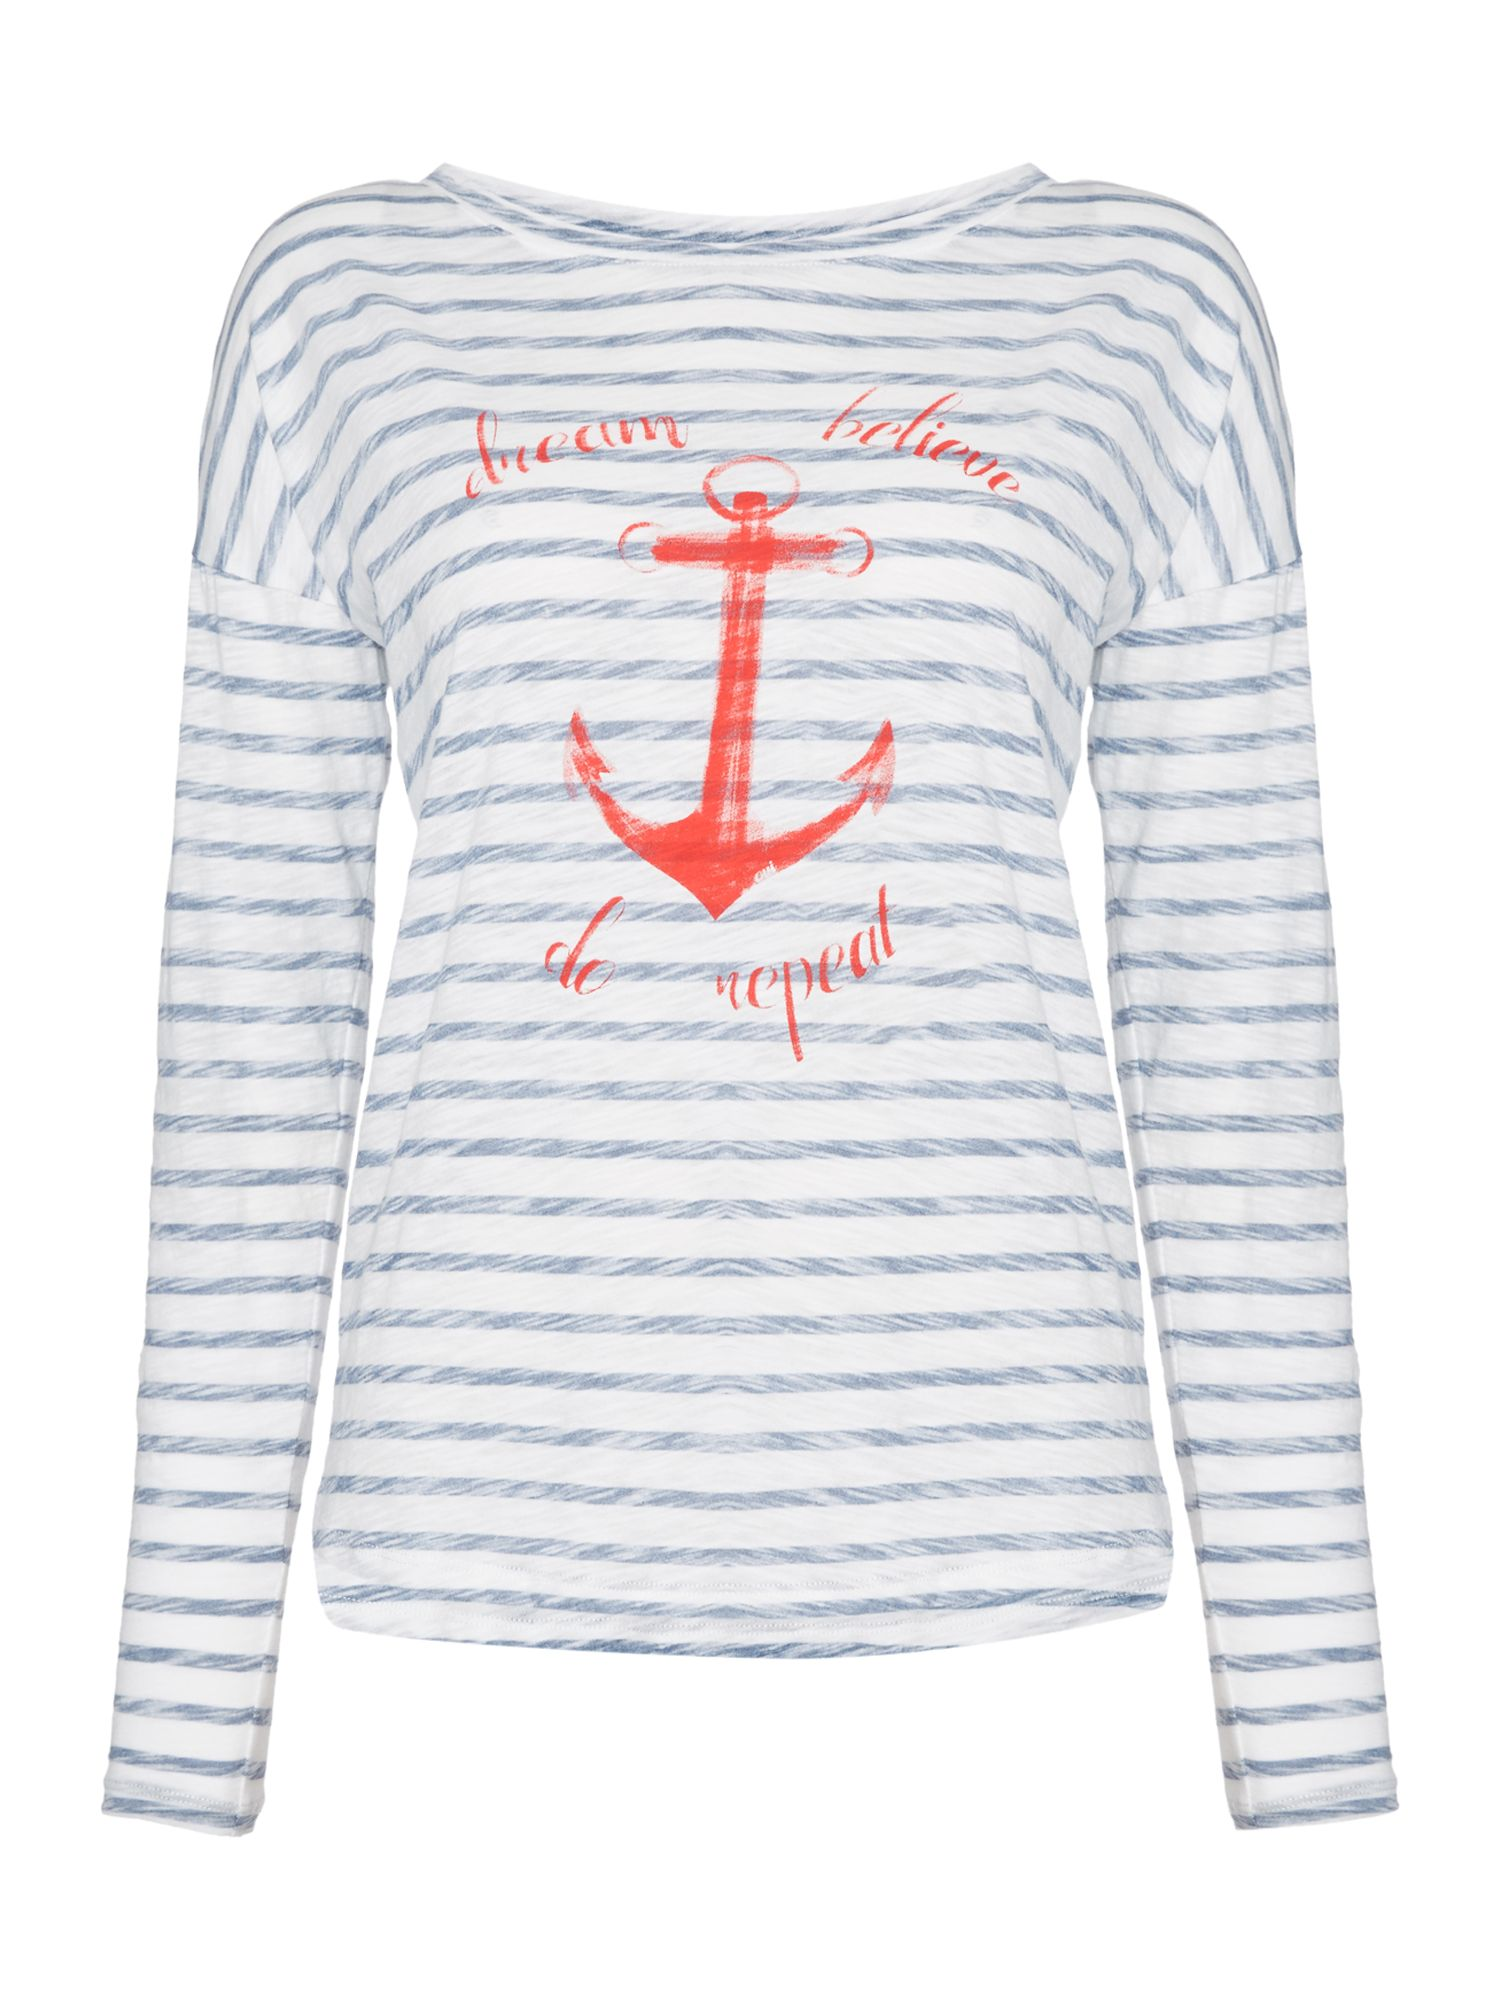 Oui Stripe anchor tee, Multi-Coloured